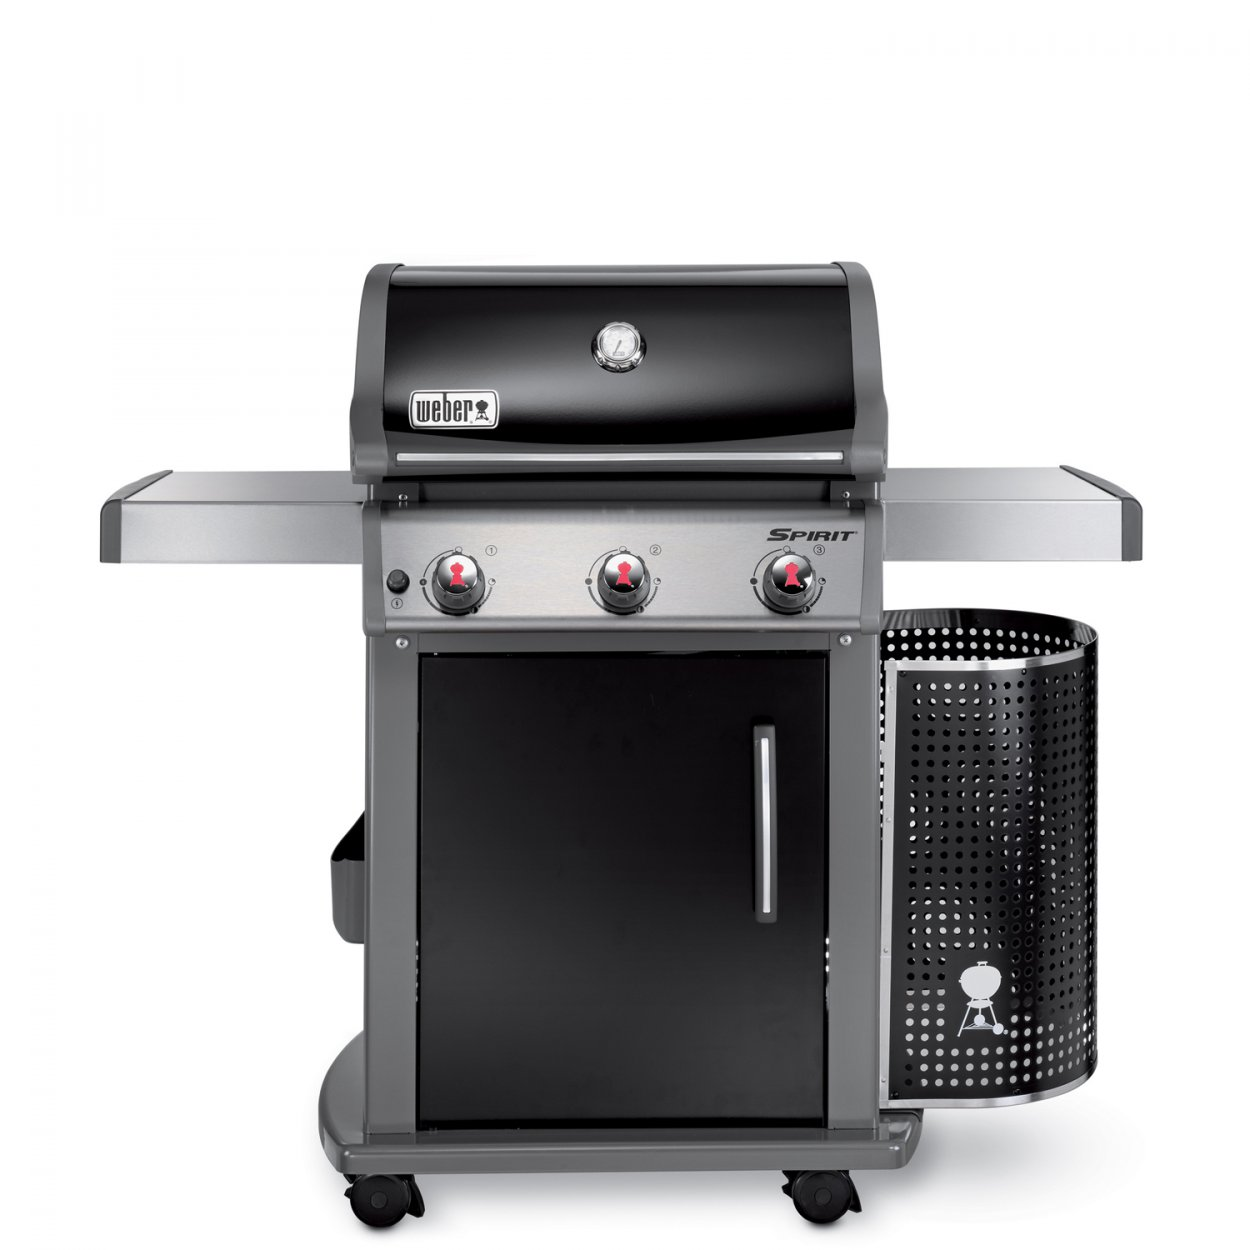 weber gasgrill spirit e 310 premium gratis grillhandschuh g nstig online portofrei kaufen. Black Bedroom Furniture Sets. Home Design Ideas